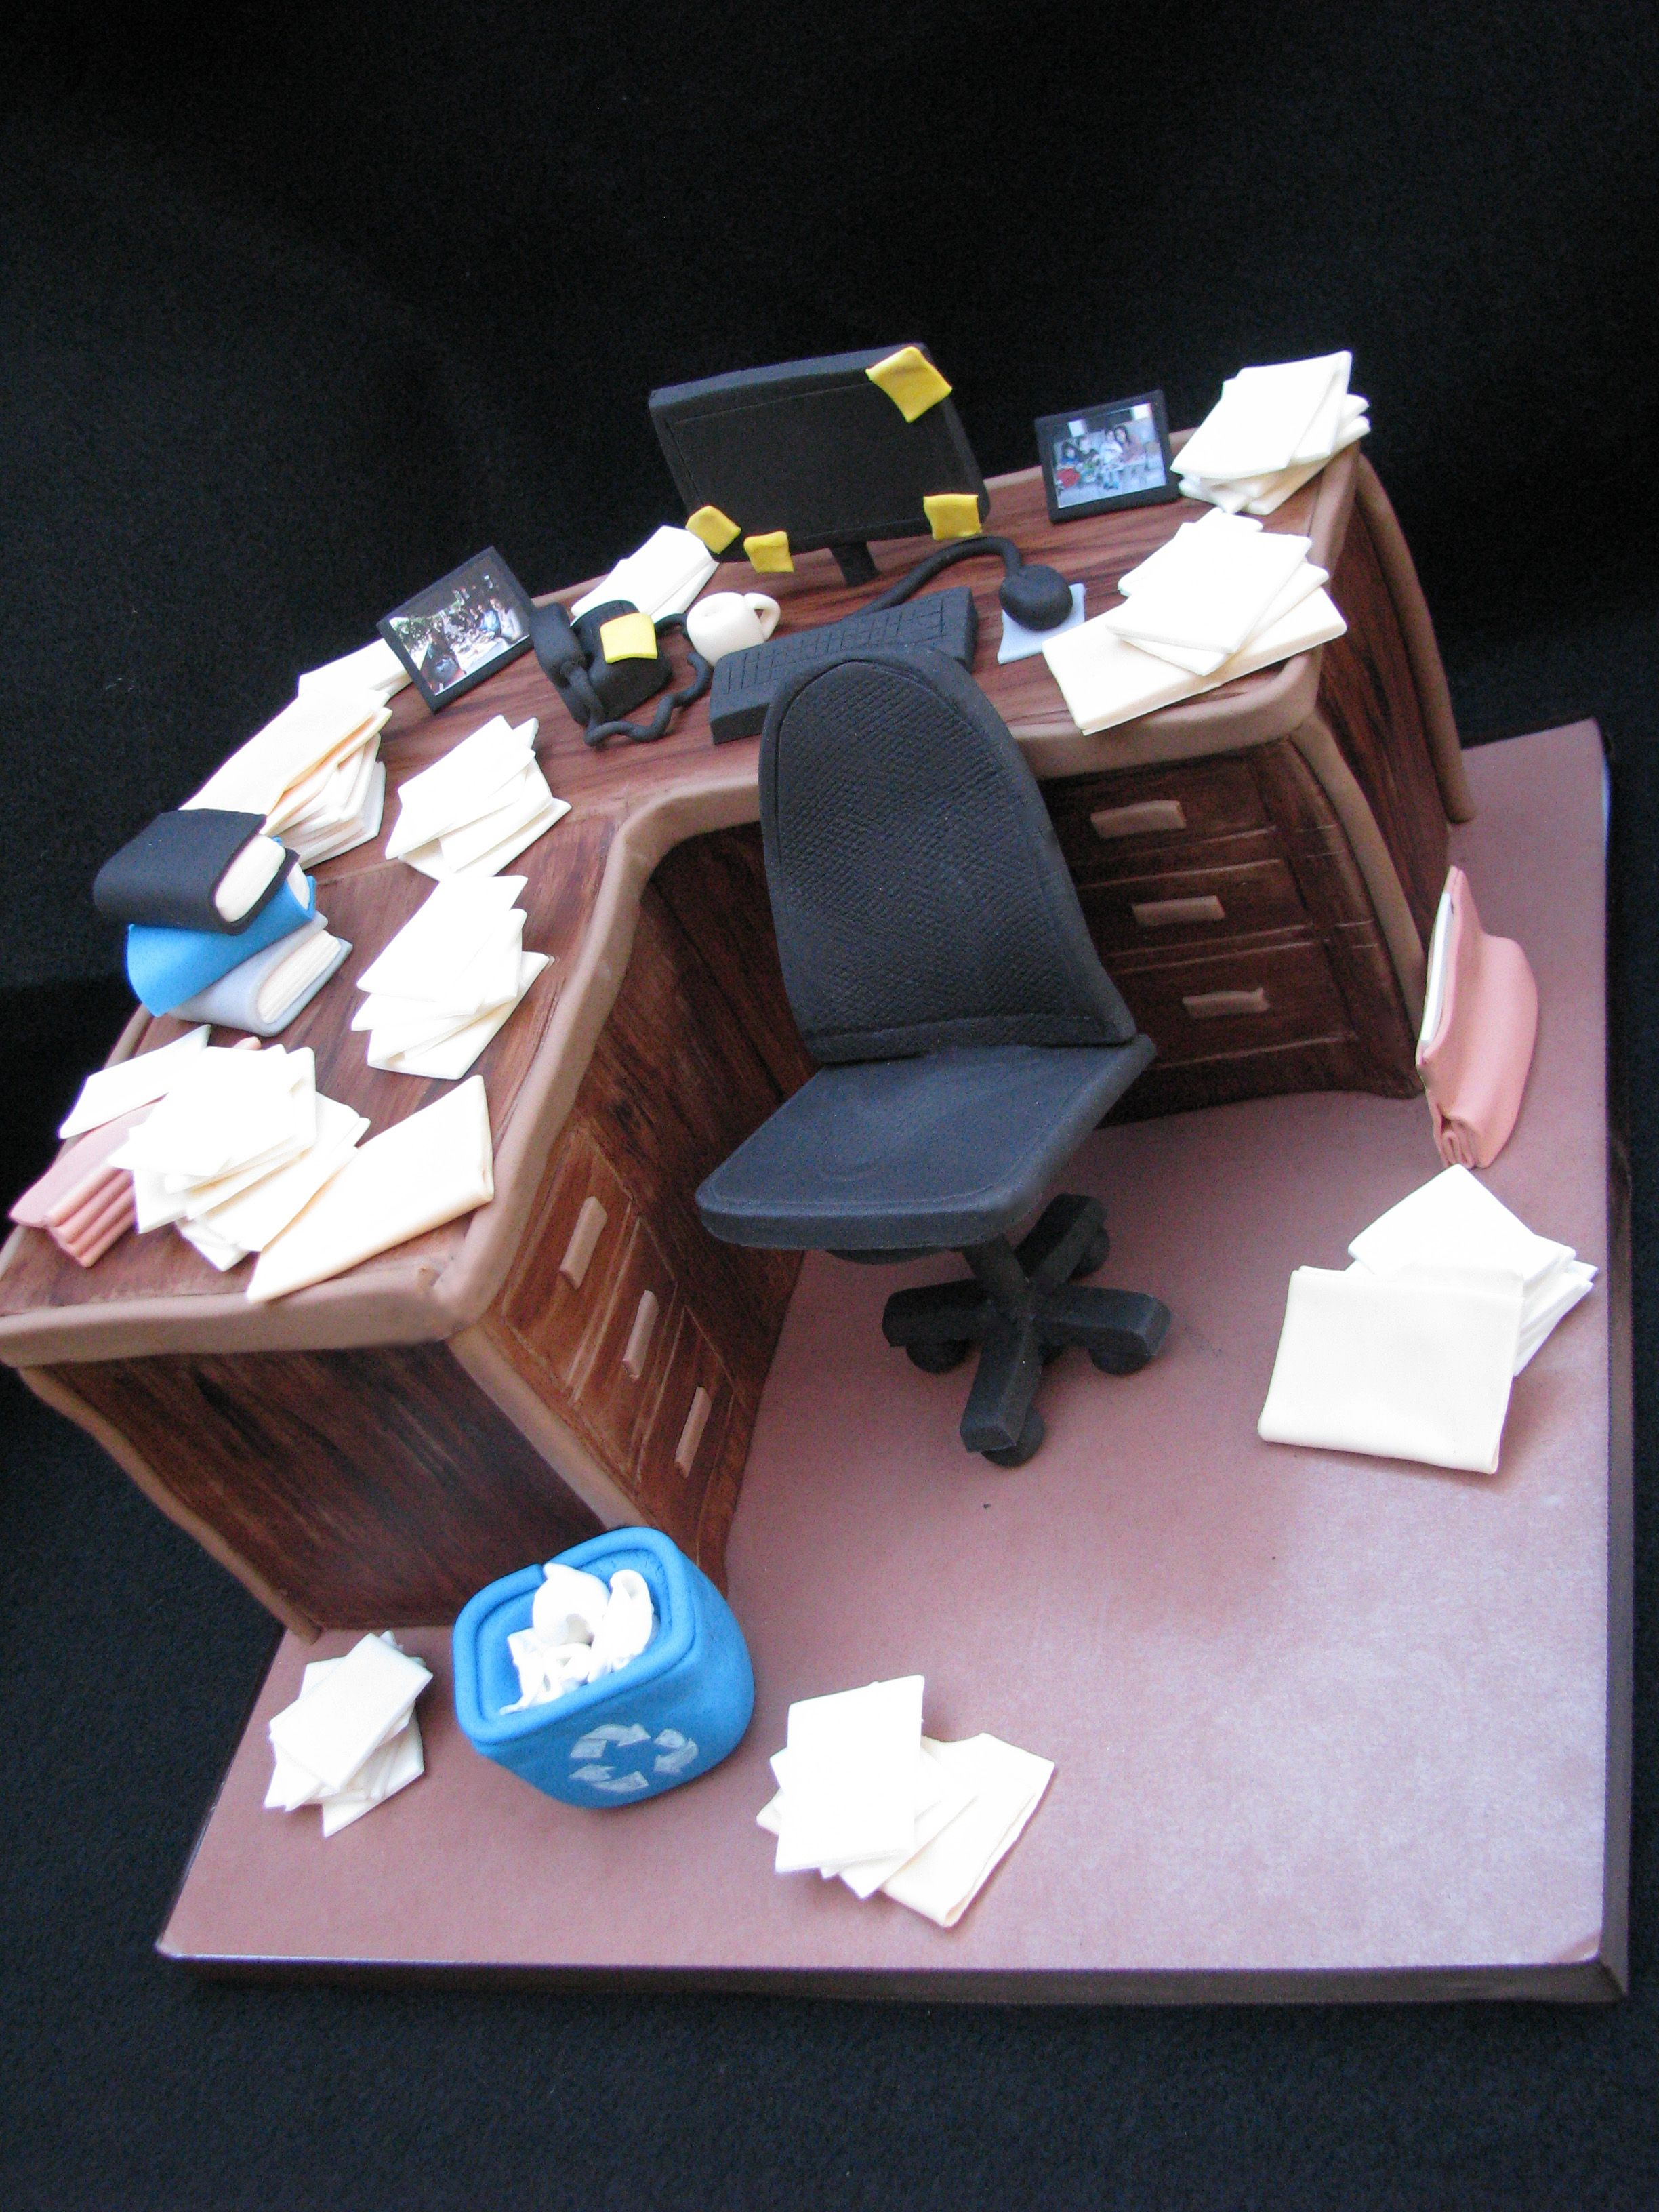 Retirement Desk Cake He Is Known For His Messy Desk This Was